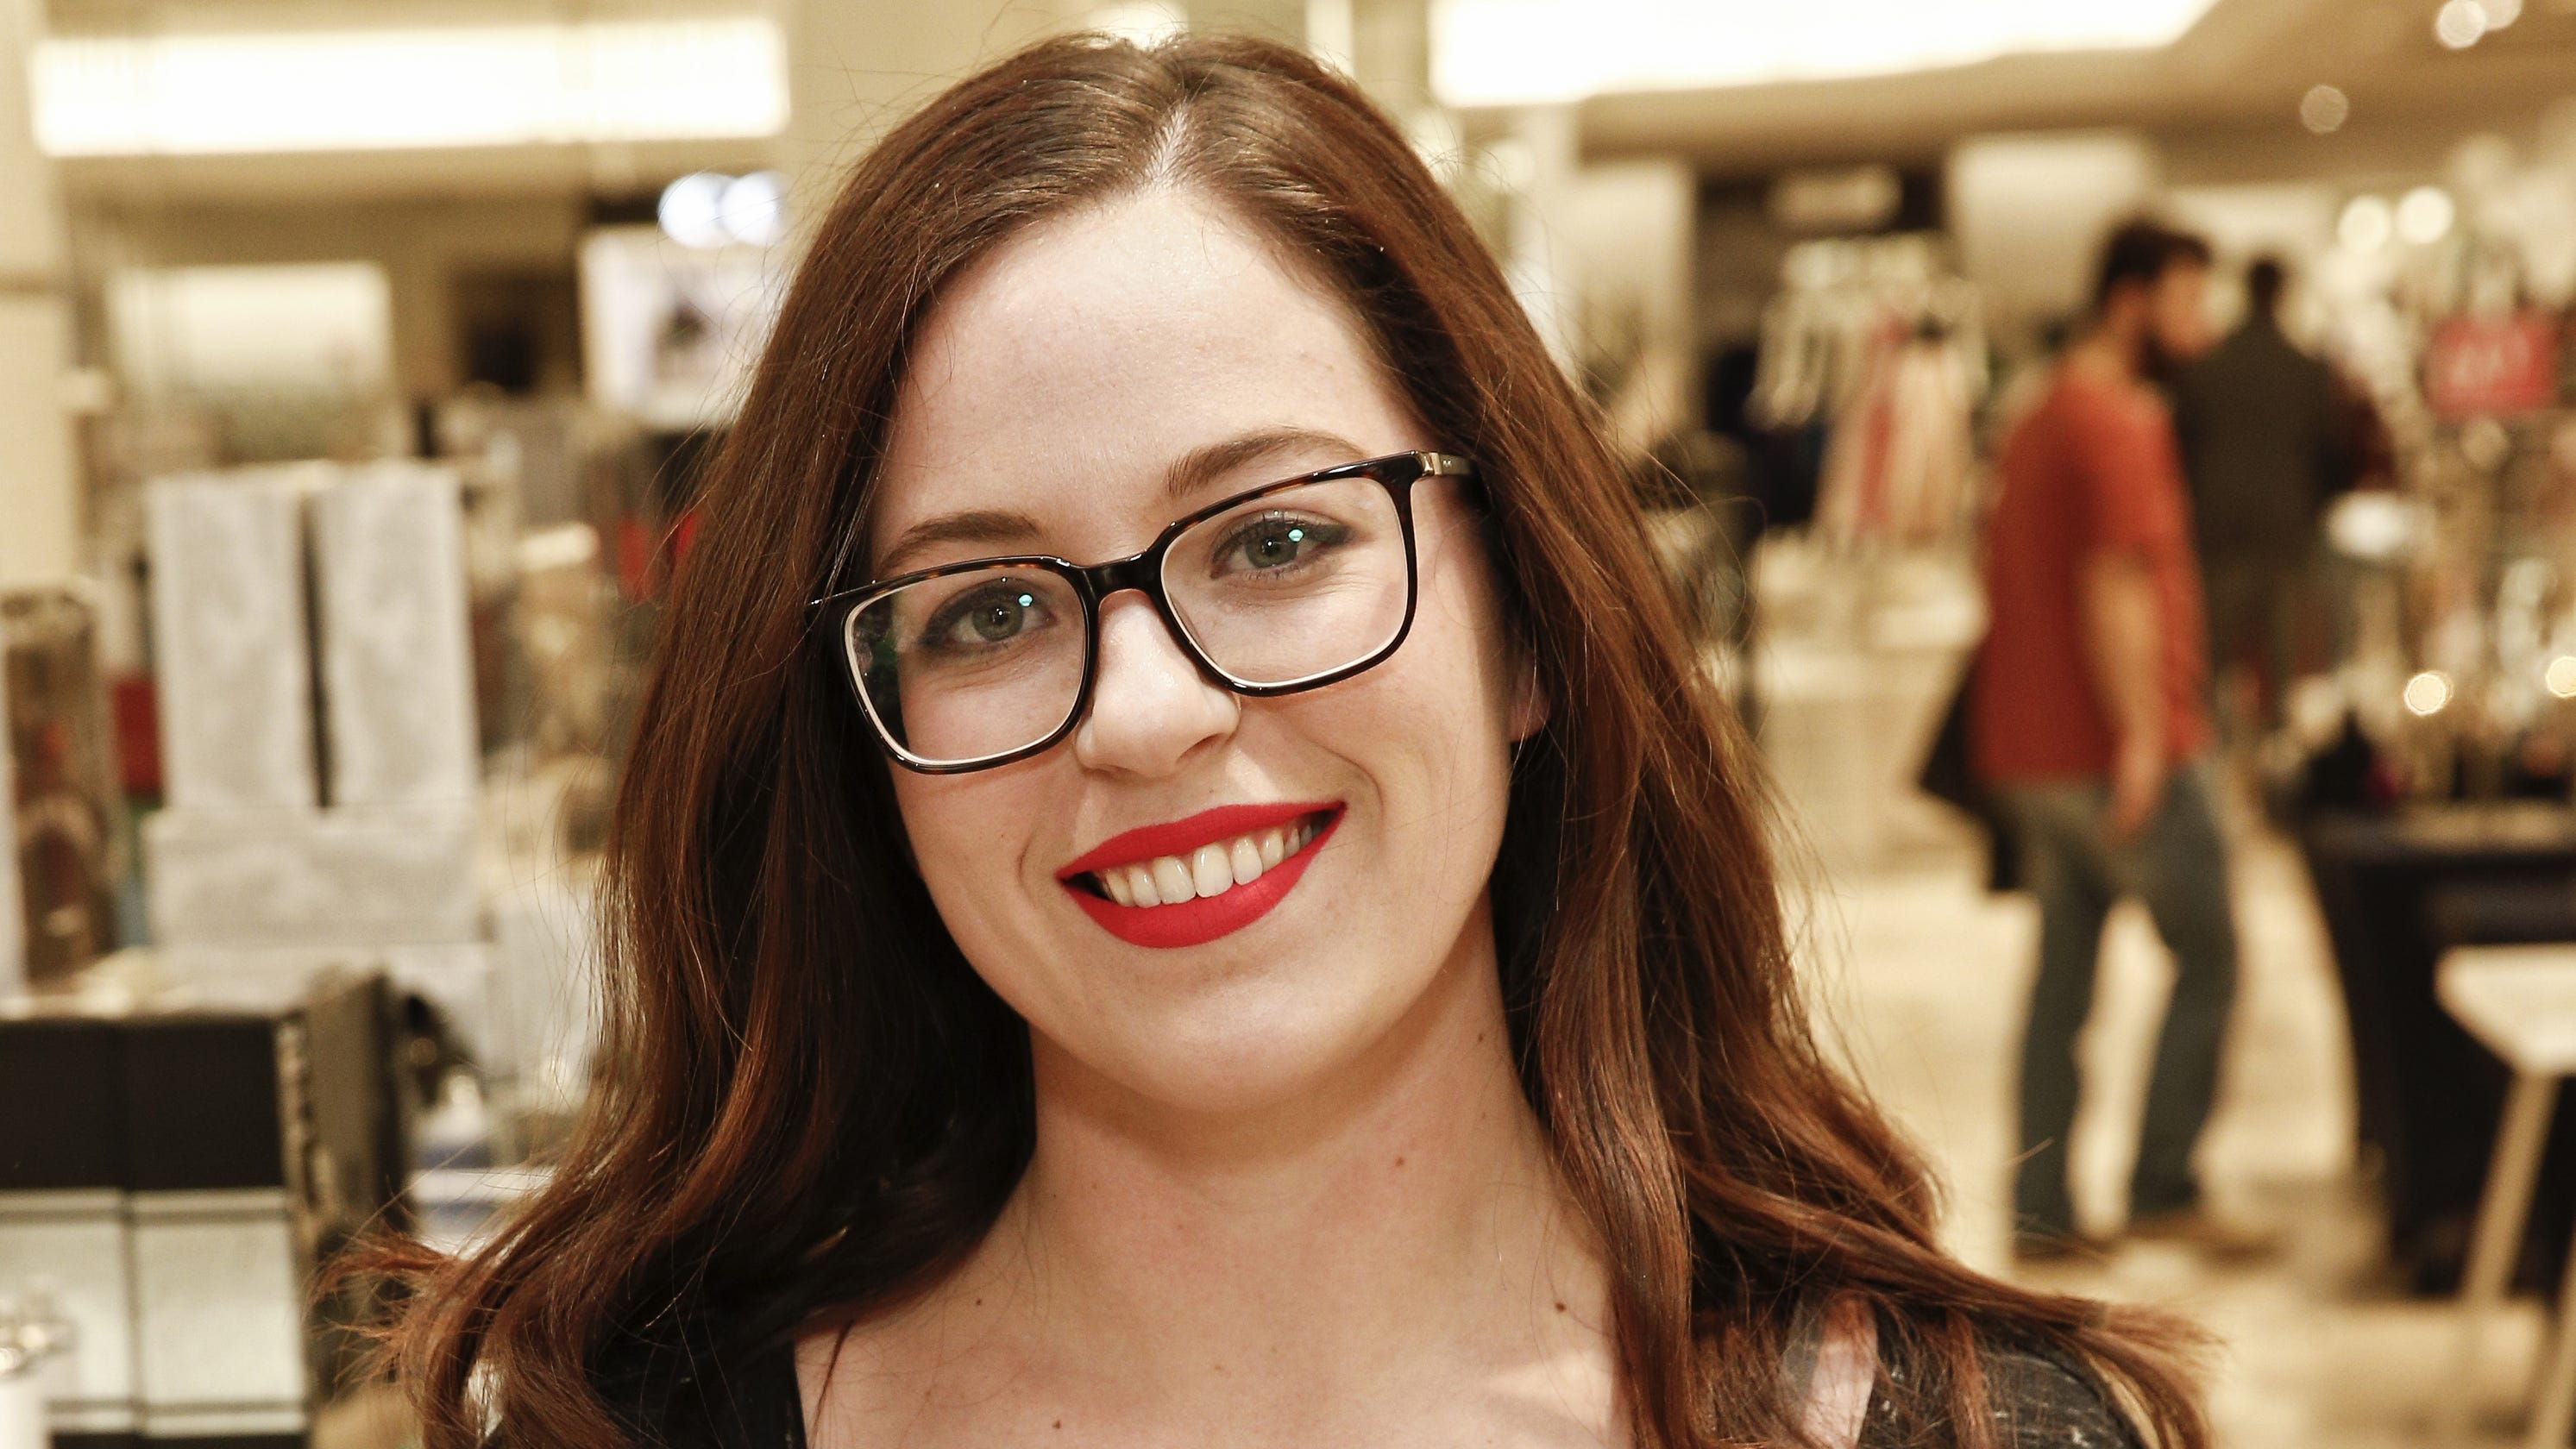 Dr  Pimple Popper meets NJ 'popaholics' at book signing at GSP Lord